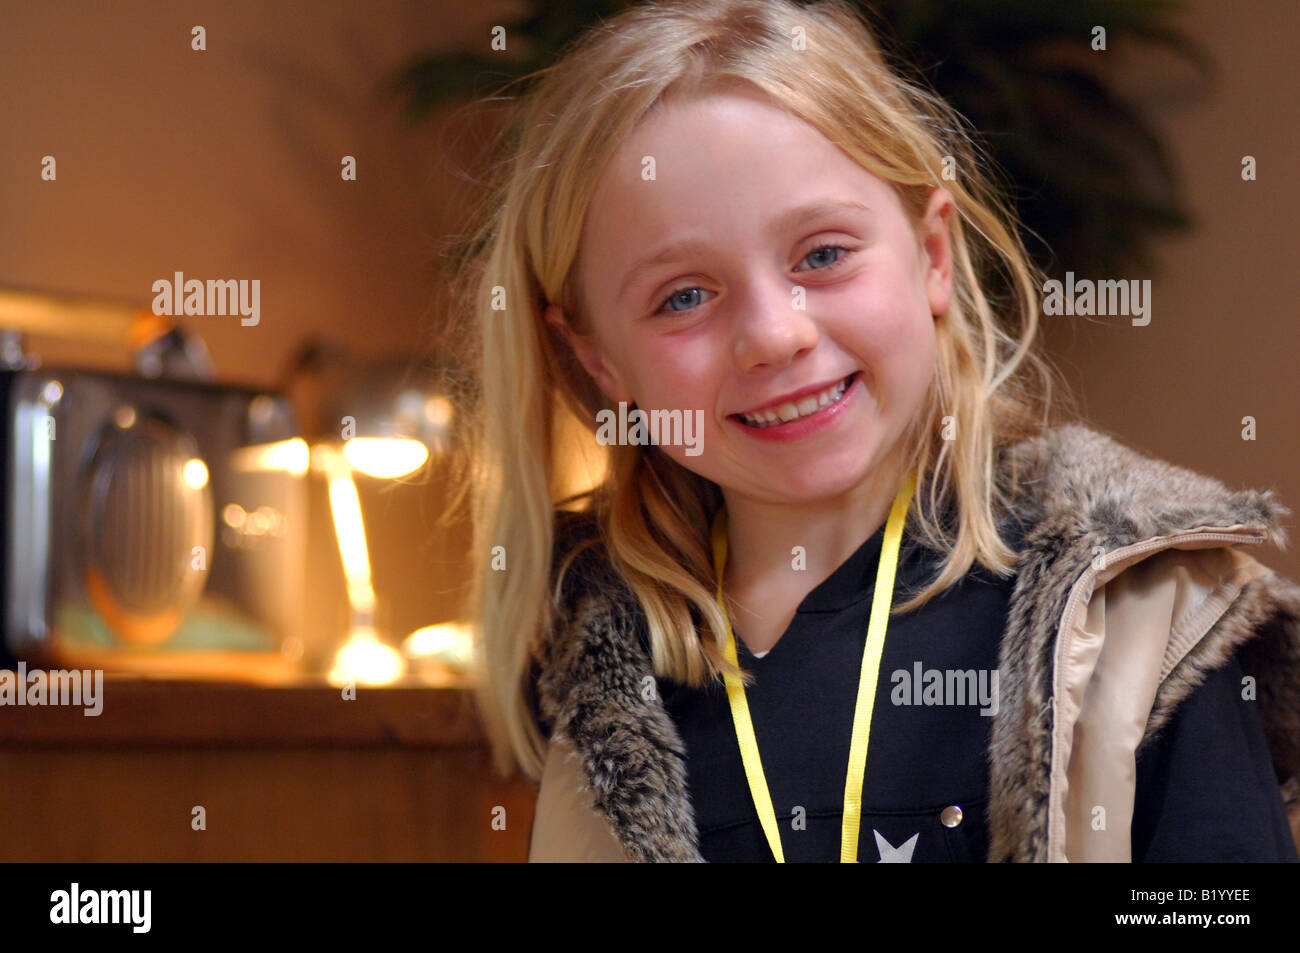 Royalty free photograph of young confident and bubbly young girl smiling at  the camera at her